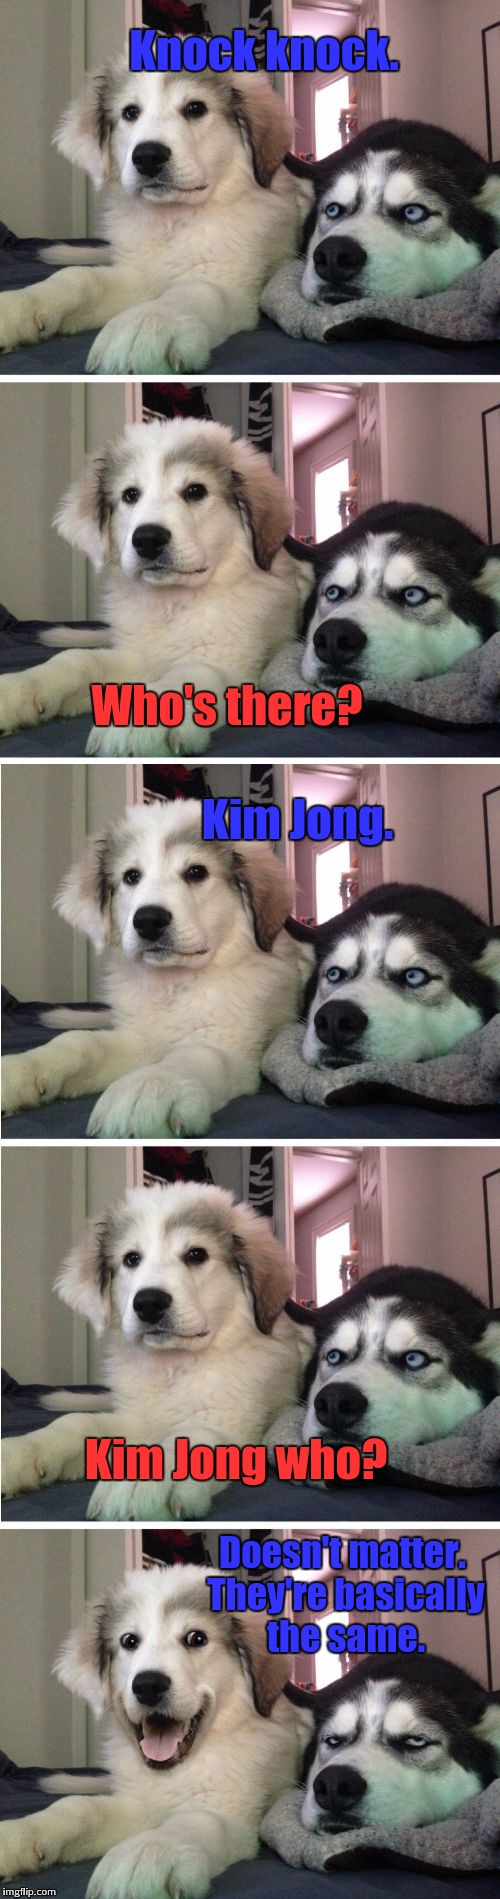 My worst knock knock joke so far... | Knock knock. Who's there? Kim Jong. Kim Jong who? Doesn't matter. They're basically the same. | image tagged in knock knock dogs | made w/ Imgflip meme maker